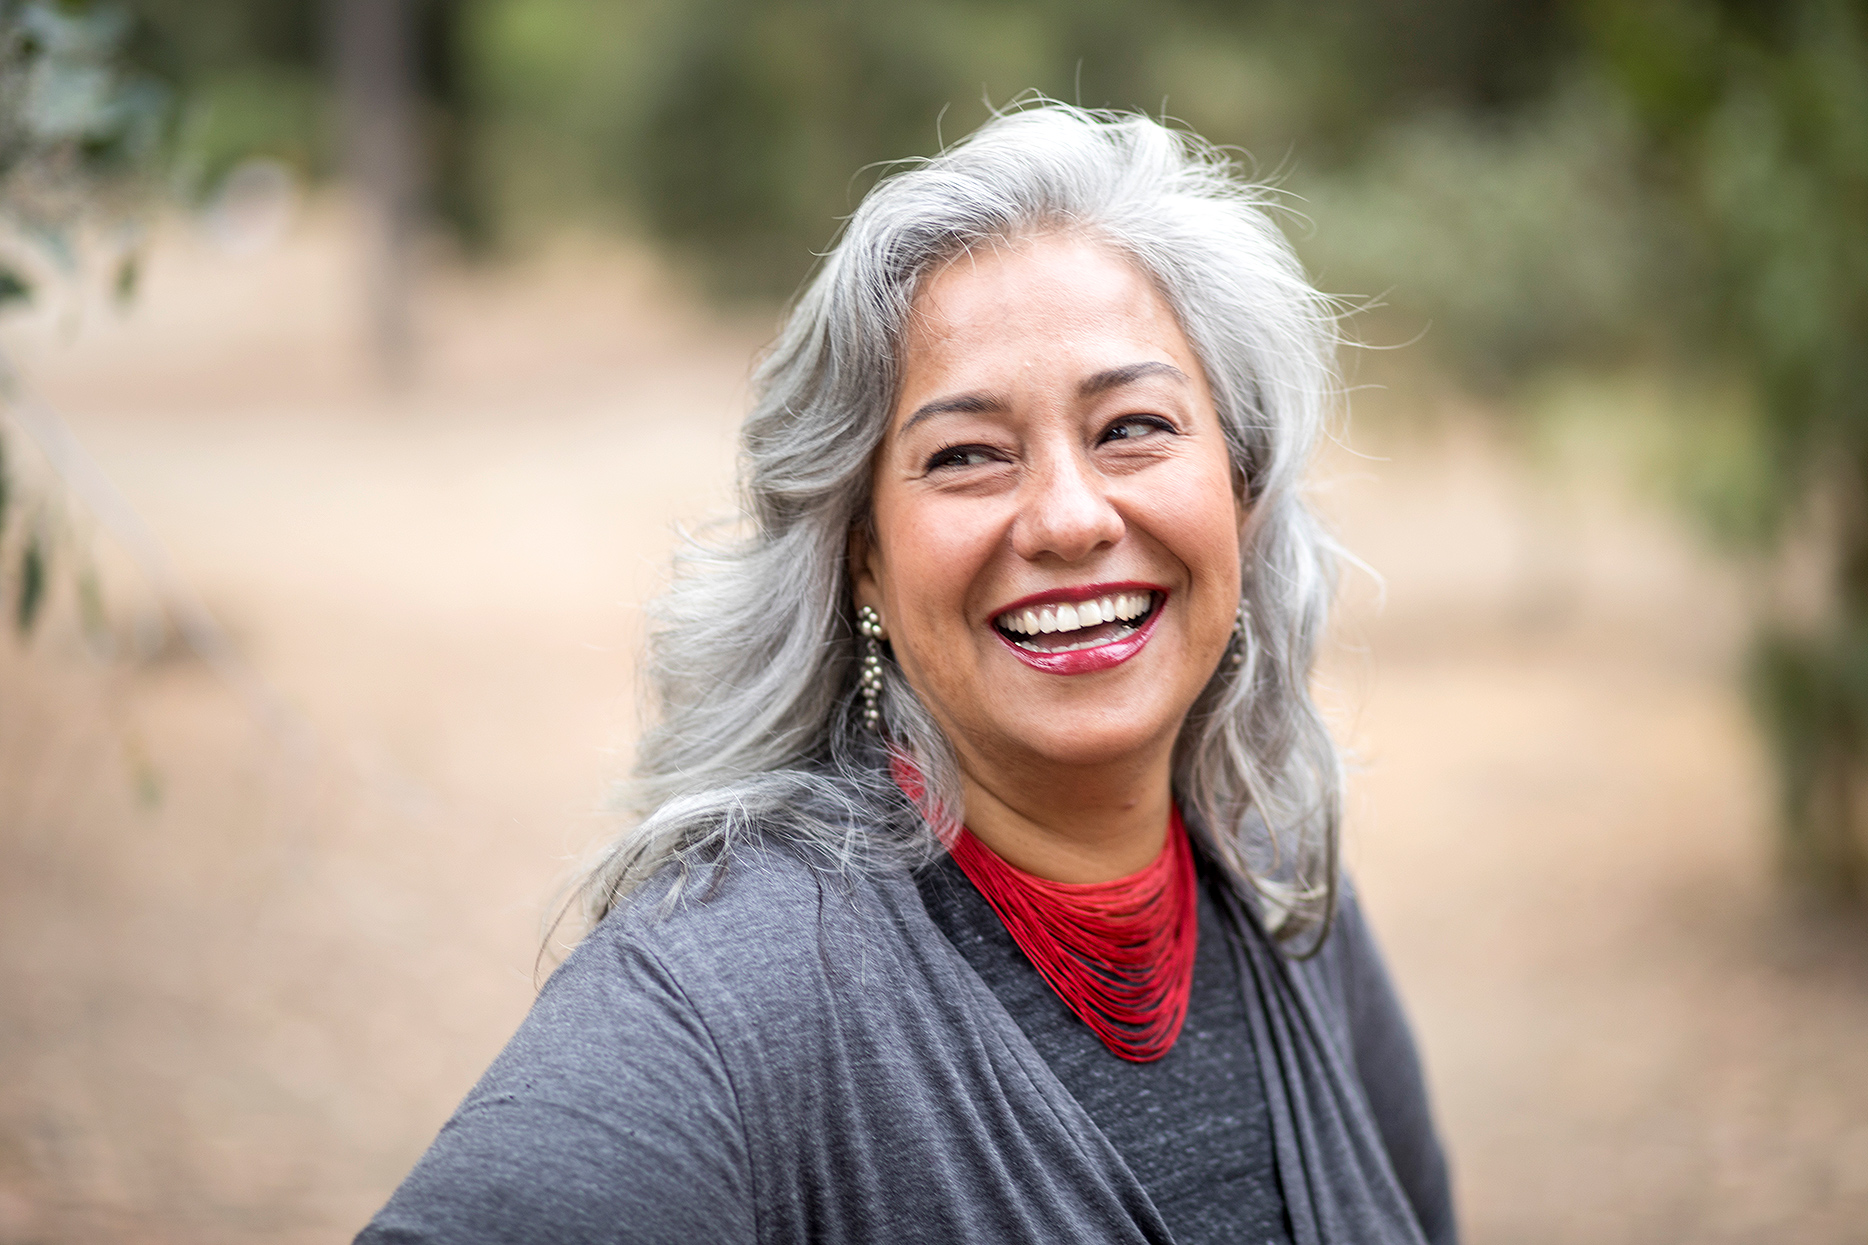 smiling middle-aged woman with silver hair and red necklace